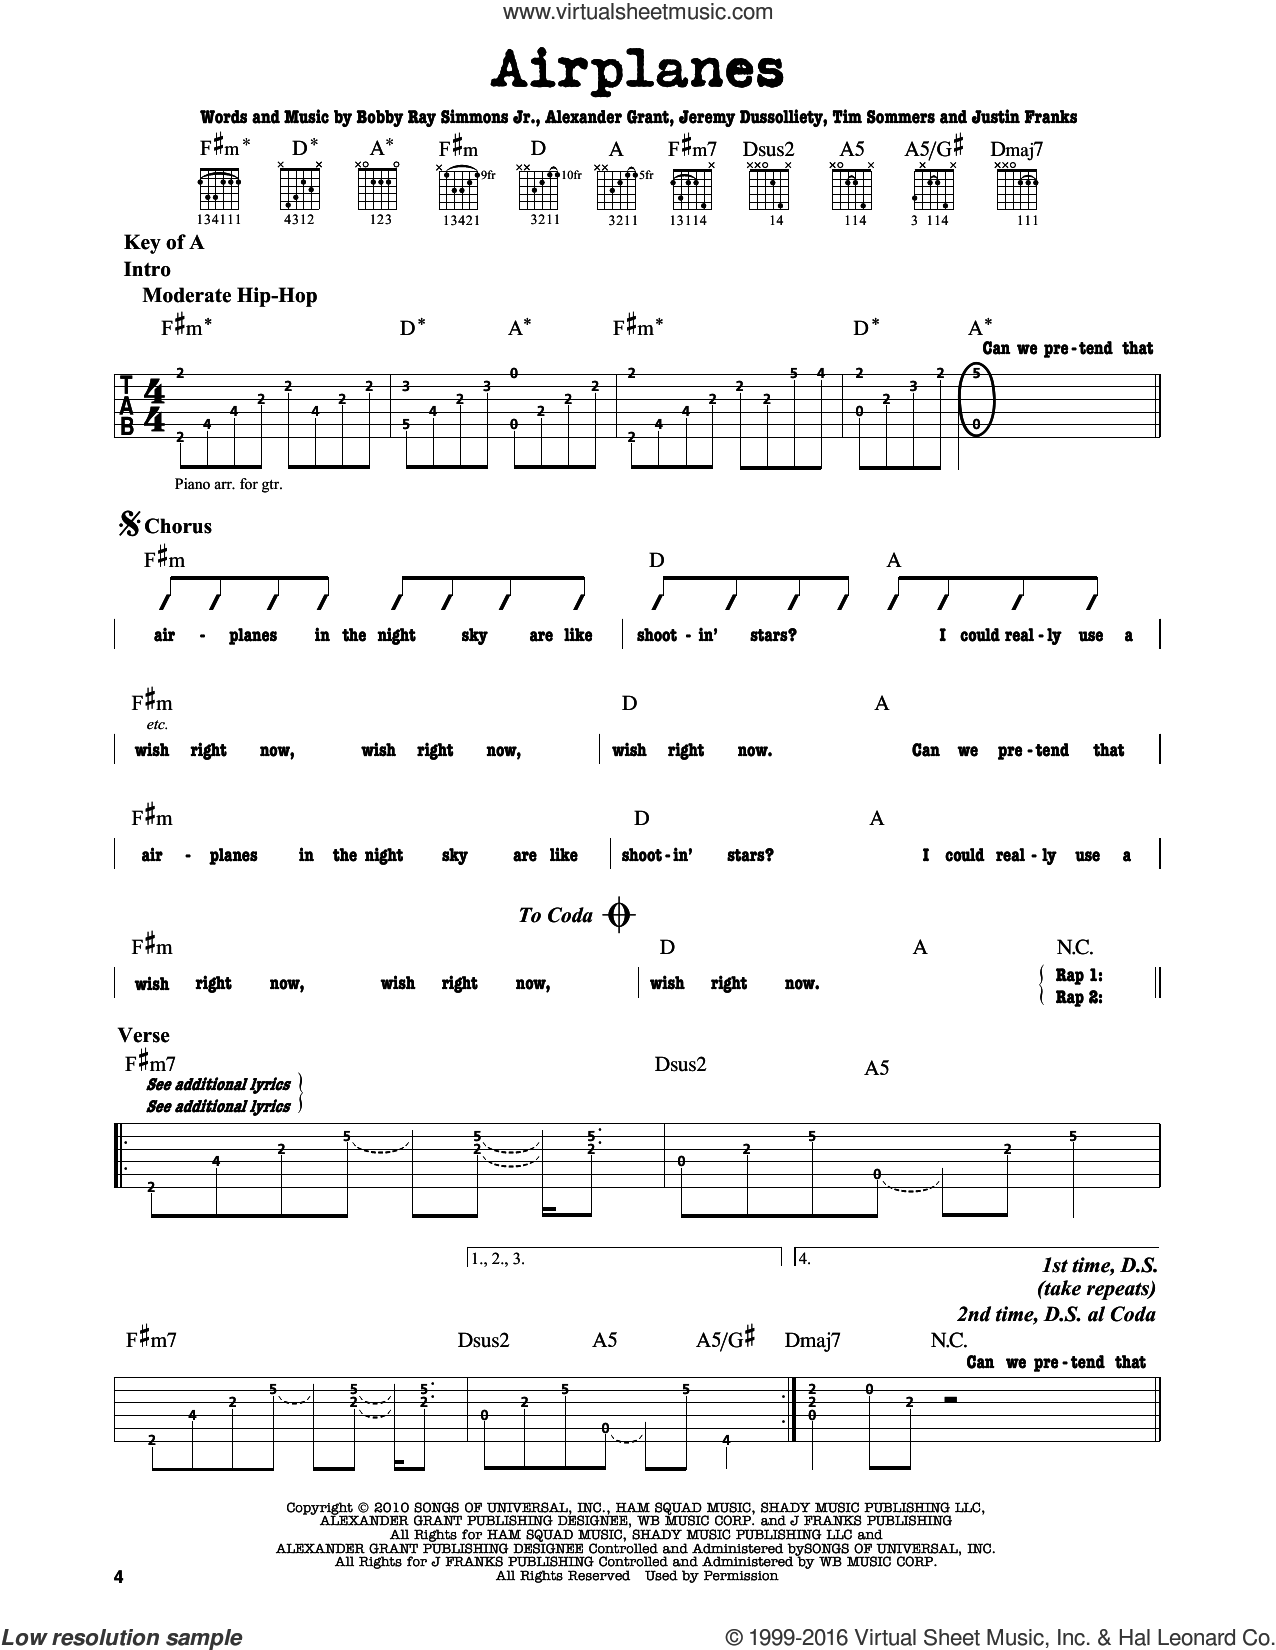 Airplanes sheet music for guitar solo (lead sheet) by B.o.B. featuring Hayley Williams, Jeremy Dussolliet, Justin Franks and Tim Sommers. Score Image Preview.